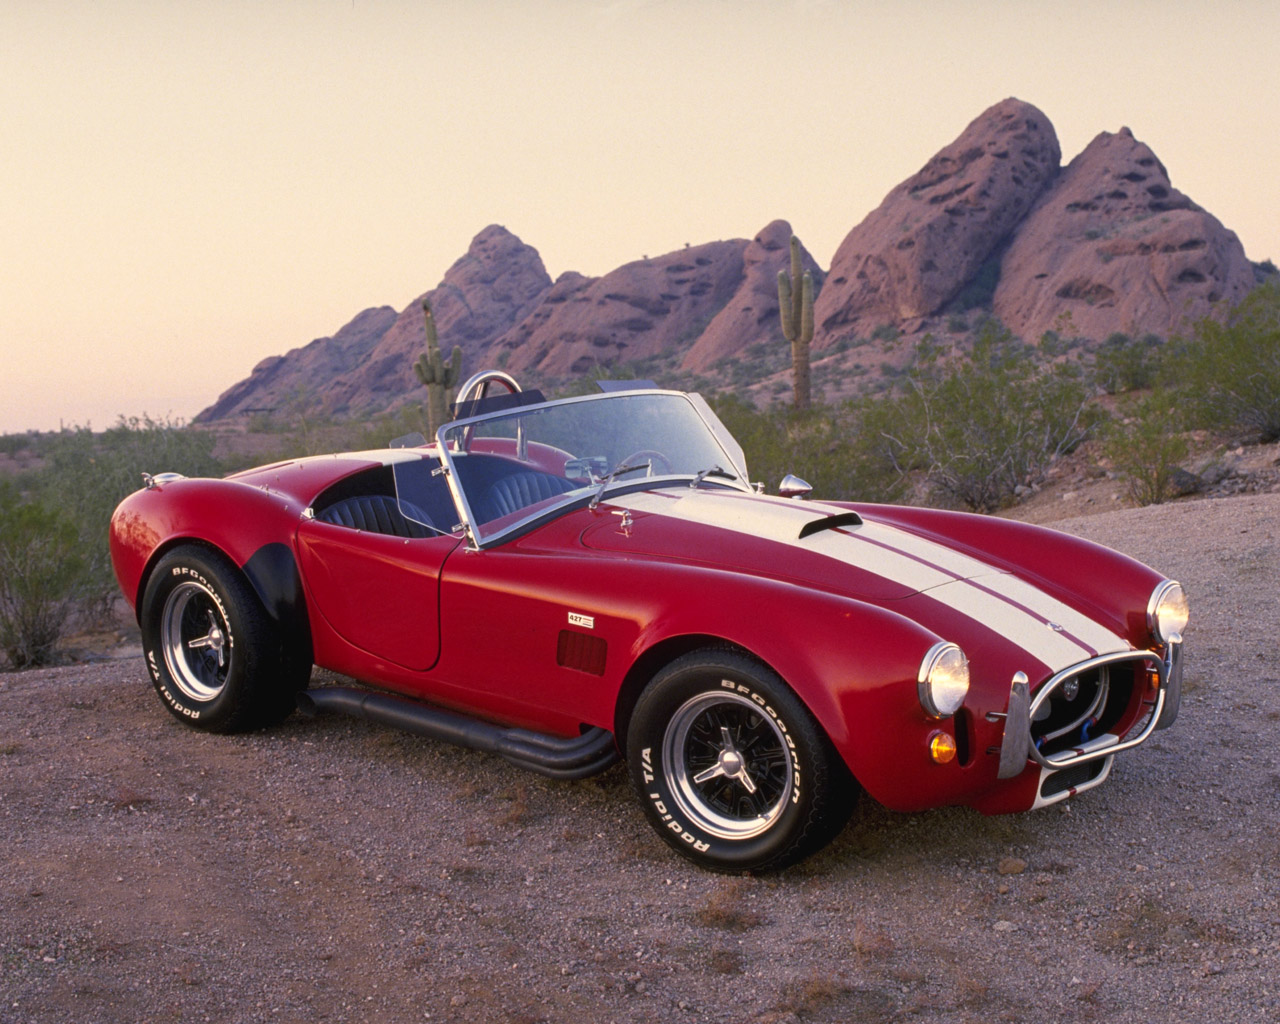 1280x1024 Red Cobra desktop PC and Mac wallpaper